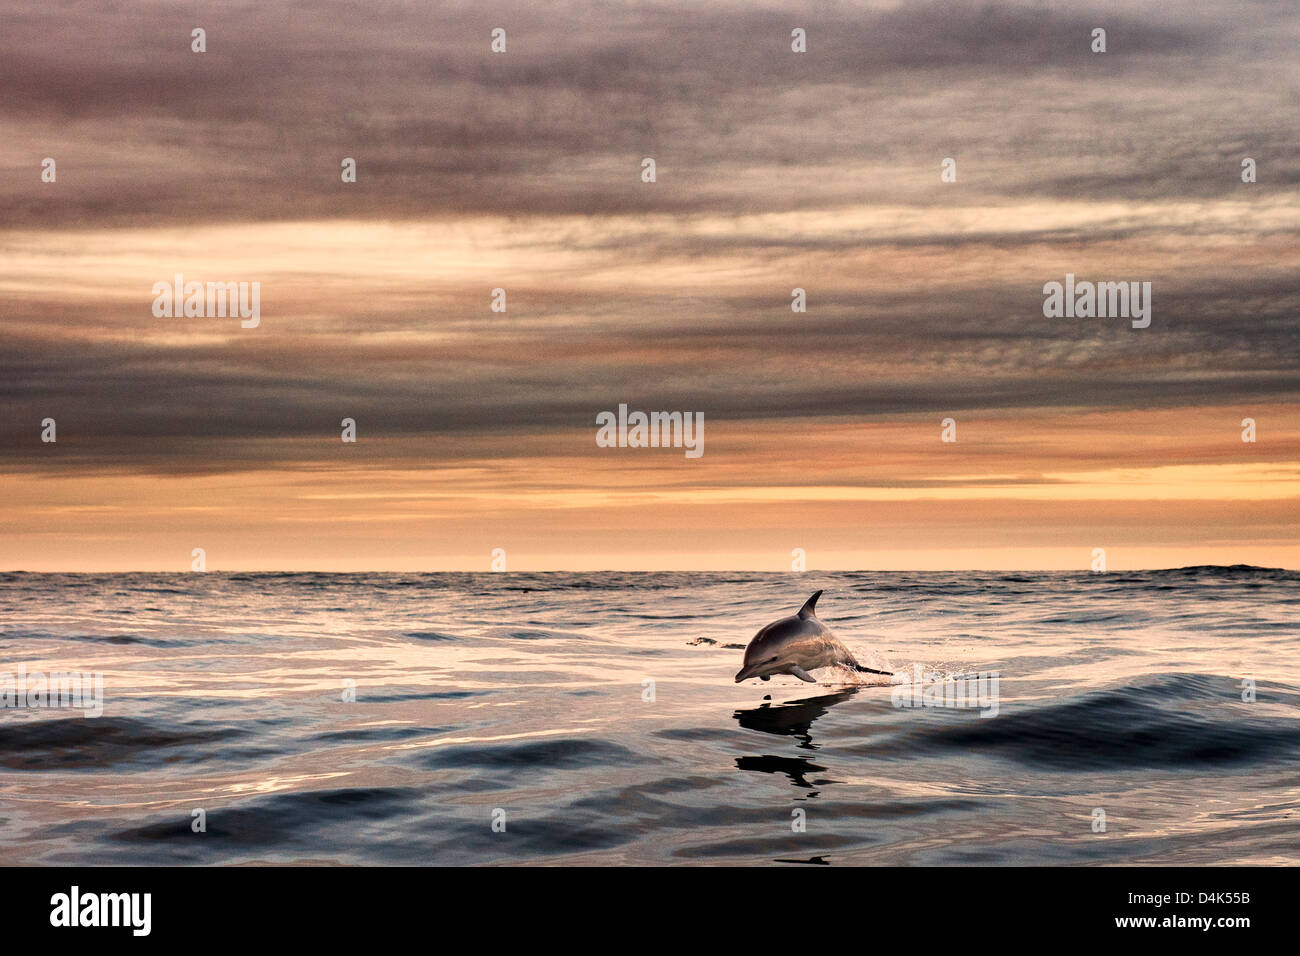 Dolphin jumping over water - Stock Image